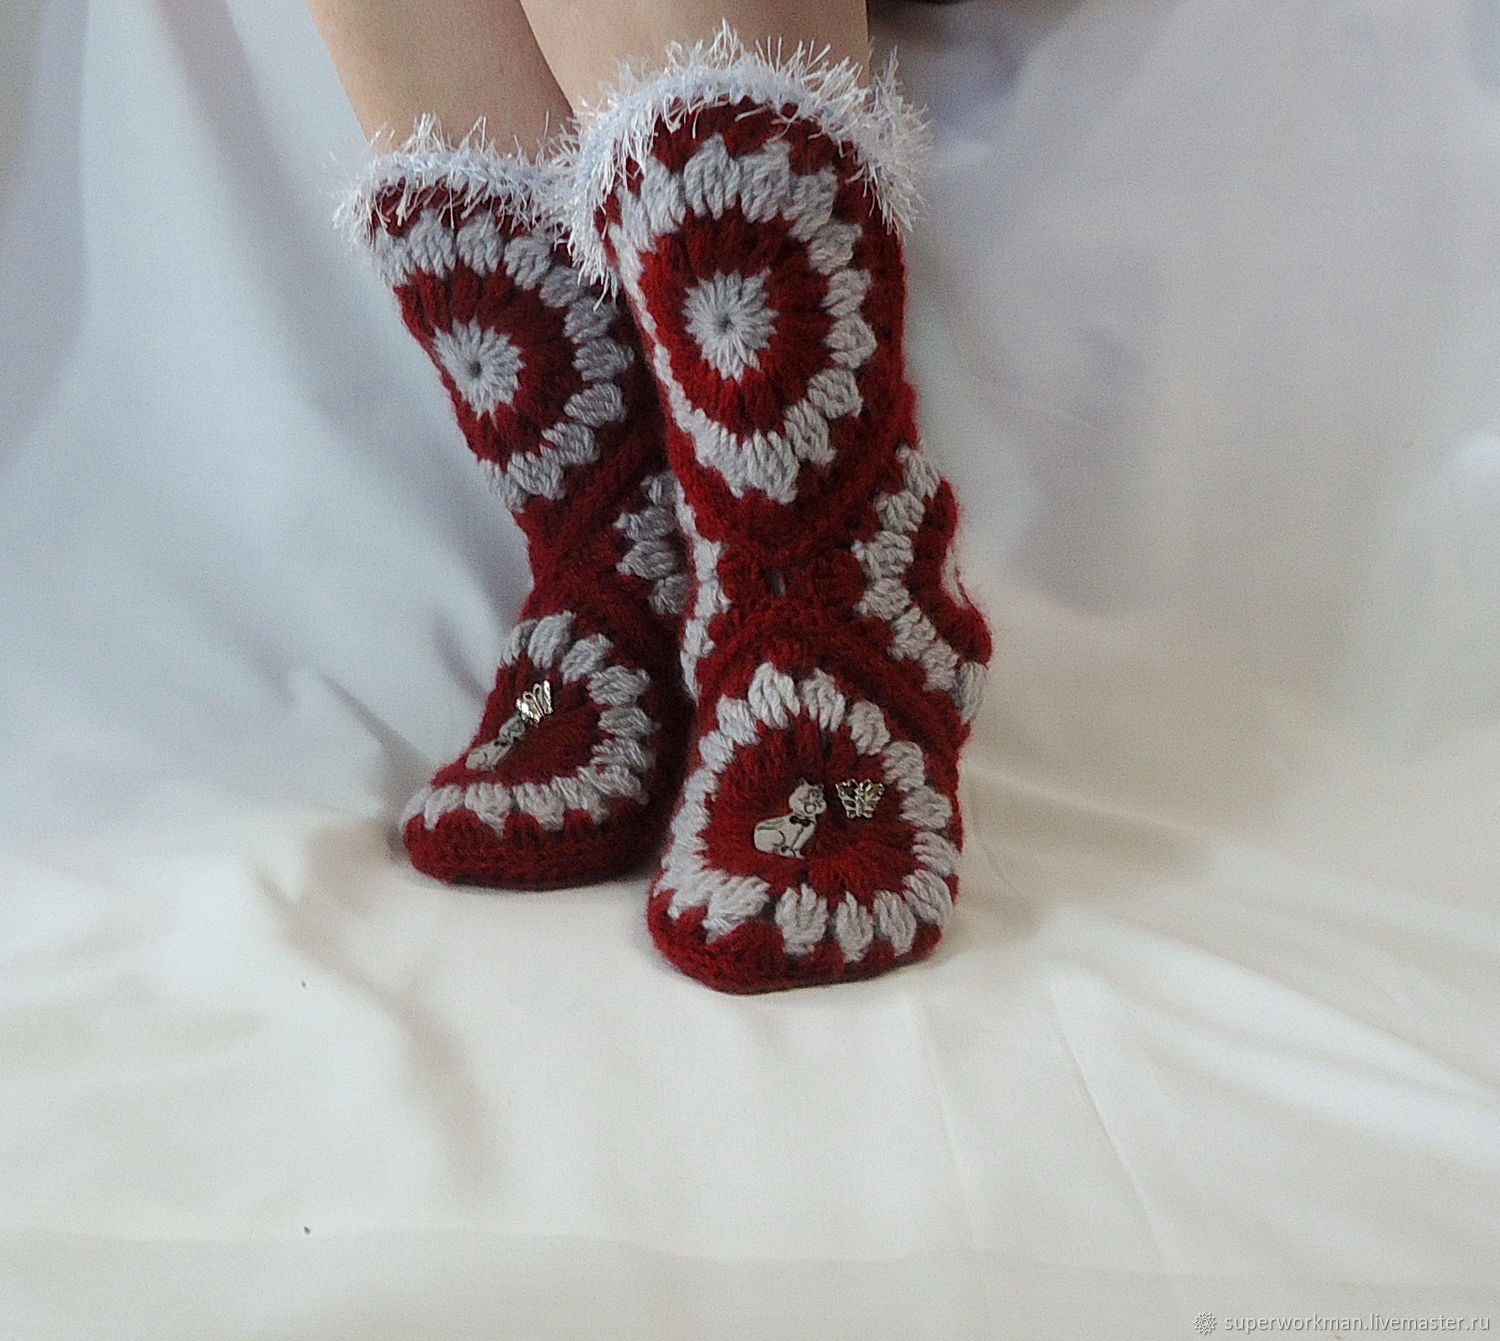 boots knitted, High Boots, Balashov,  Фото №1